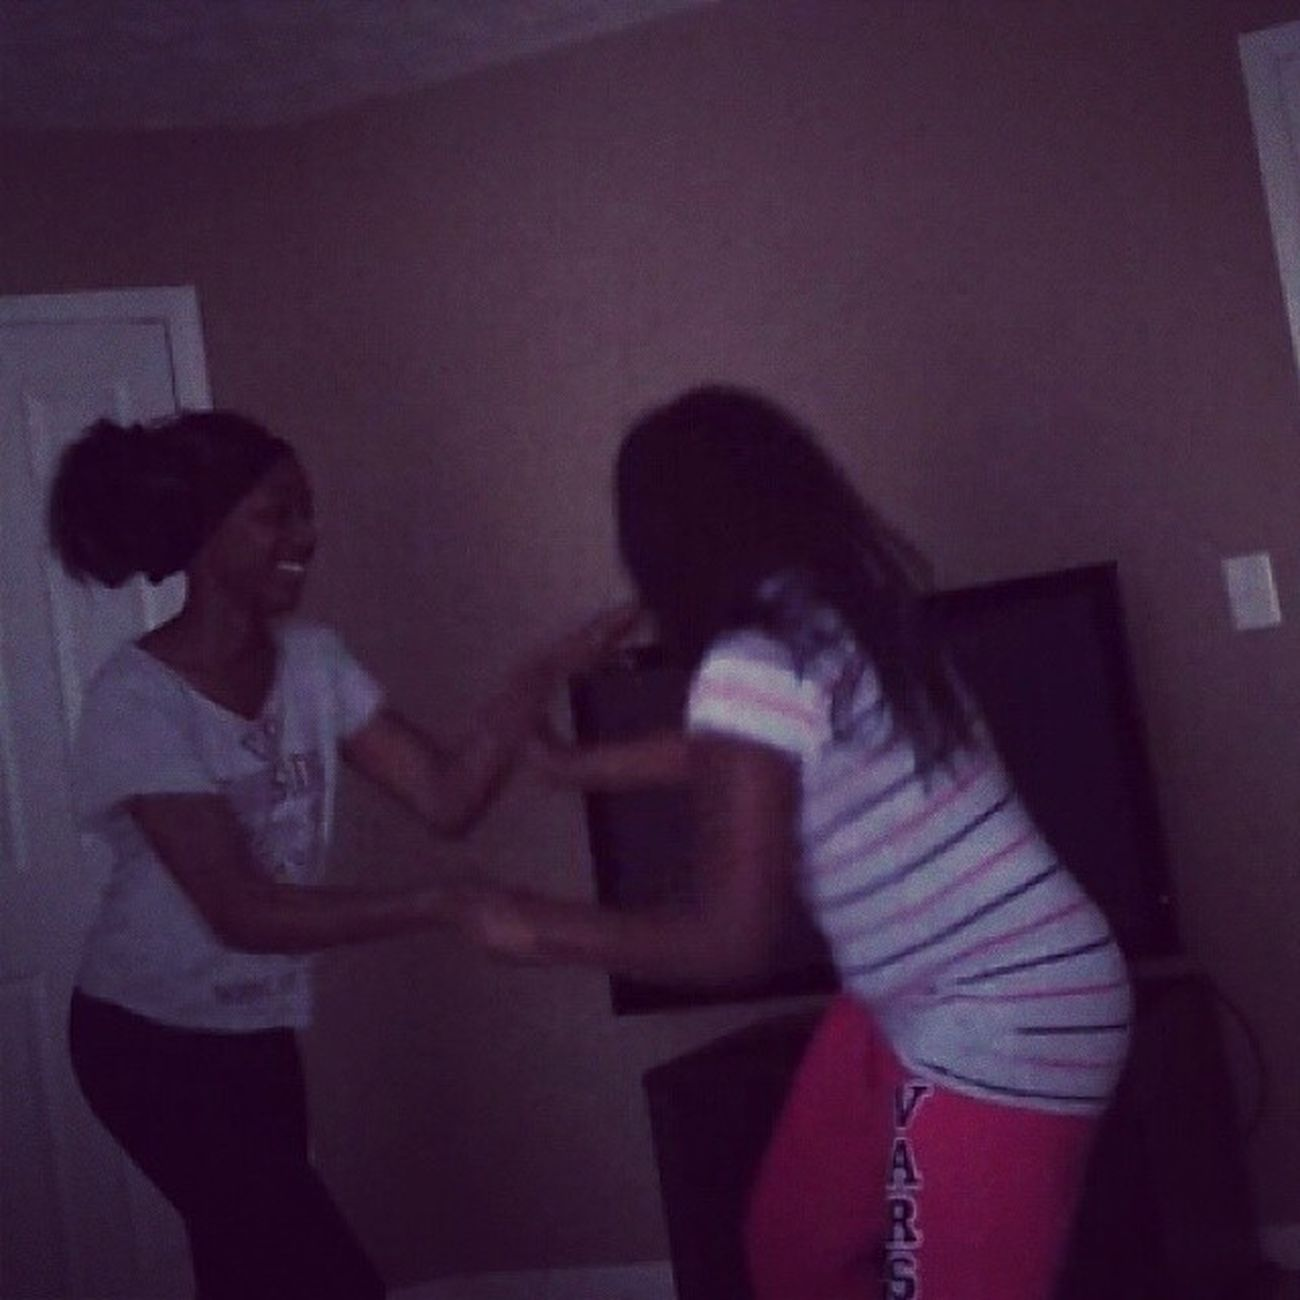 Chast and Nia Play Fighting Sos PlayFightin LOL Follow doubletap dt me